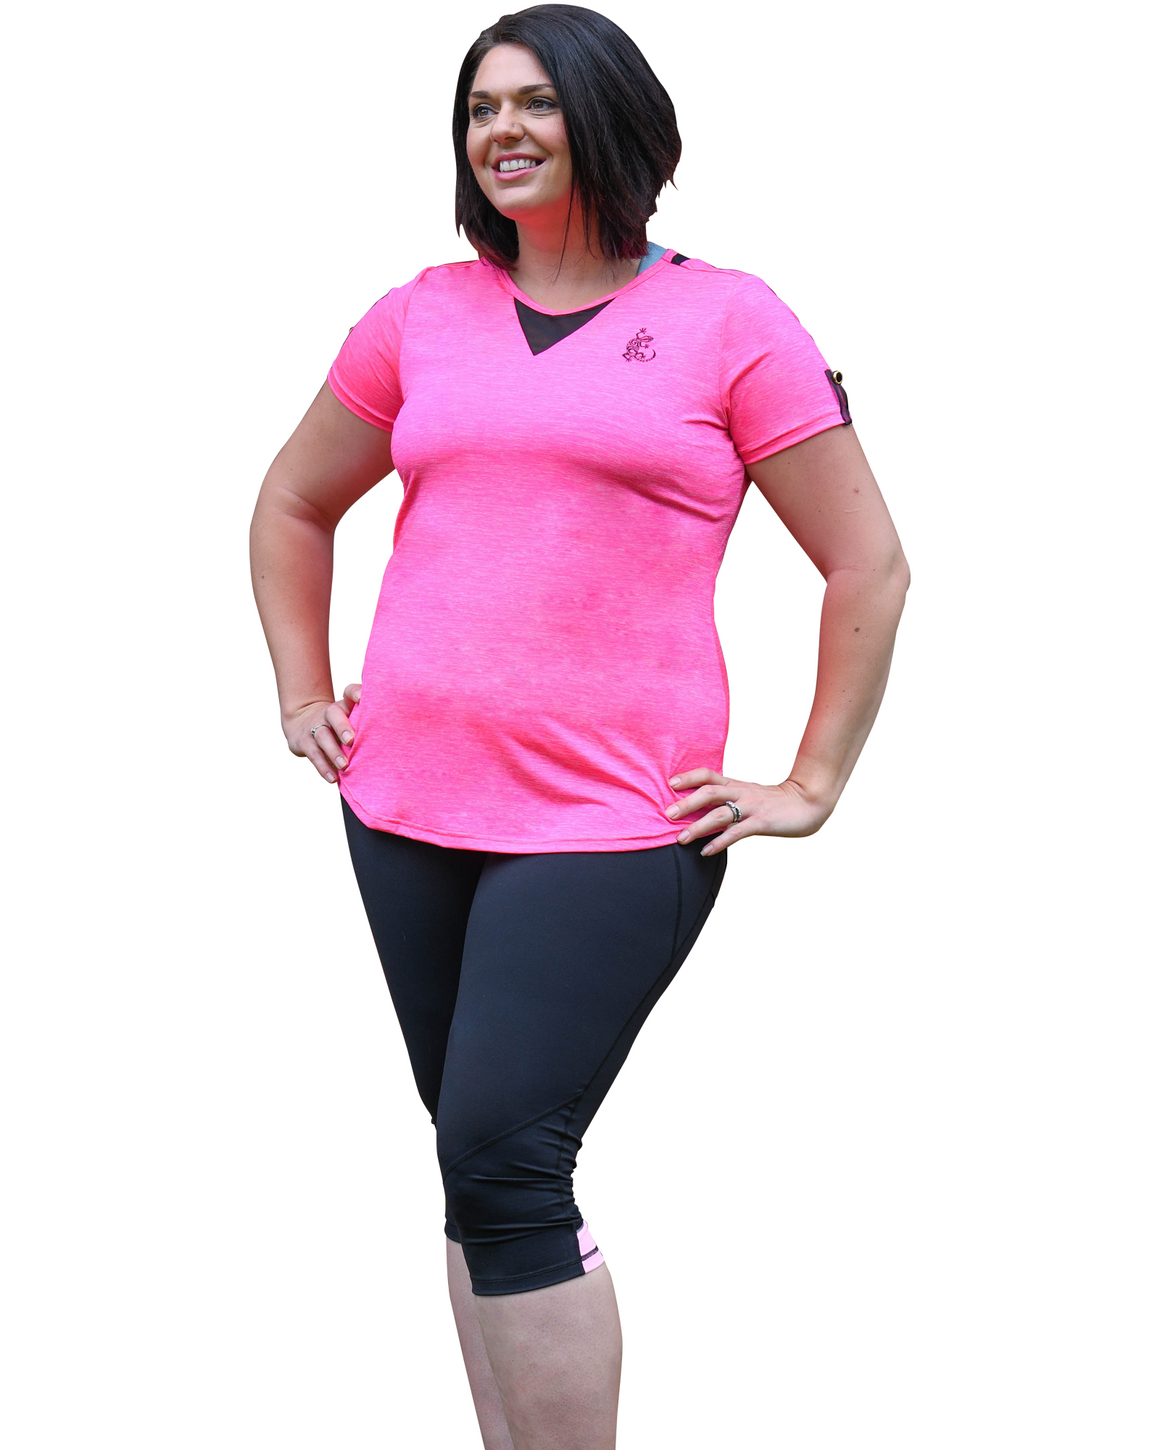 Look great in these 2 tone pink plus size women's tights.